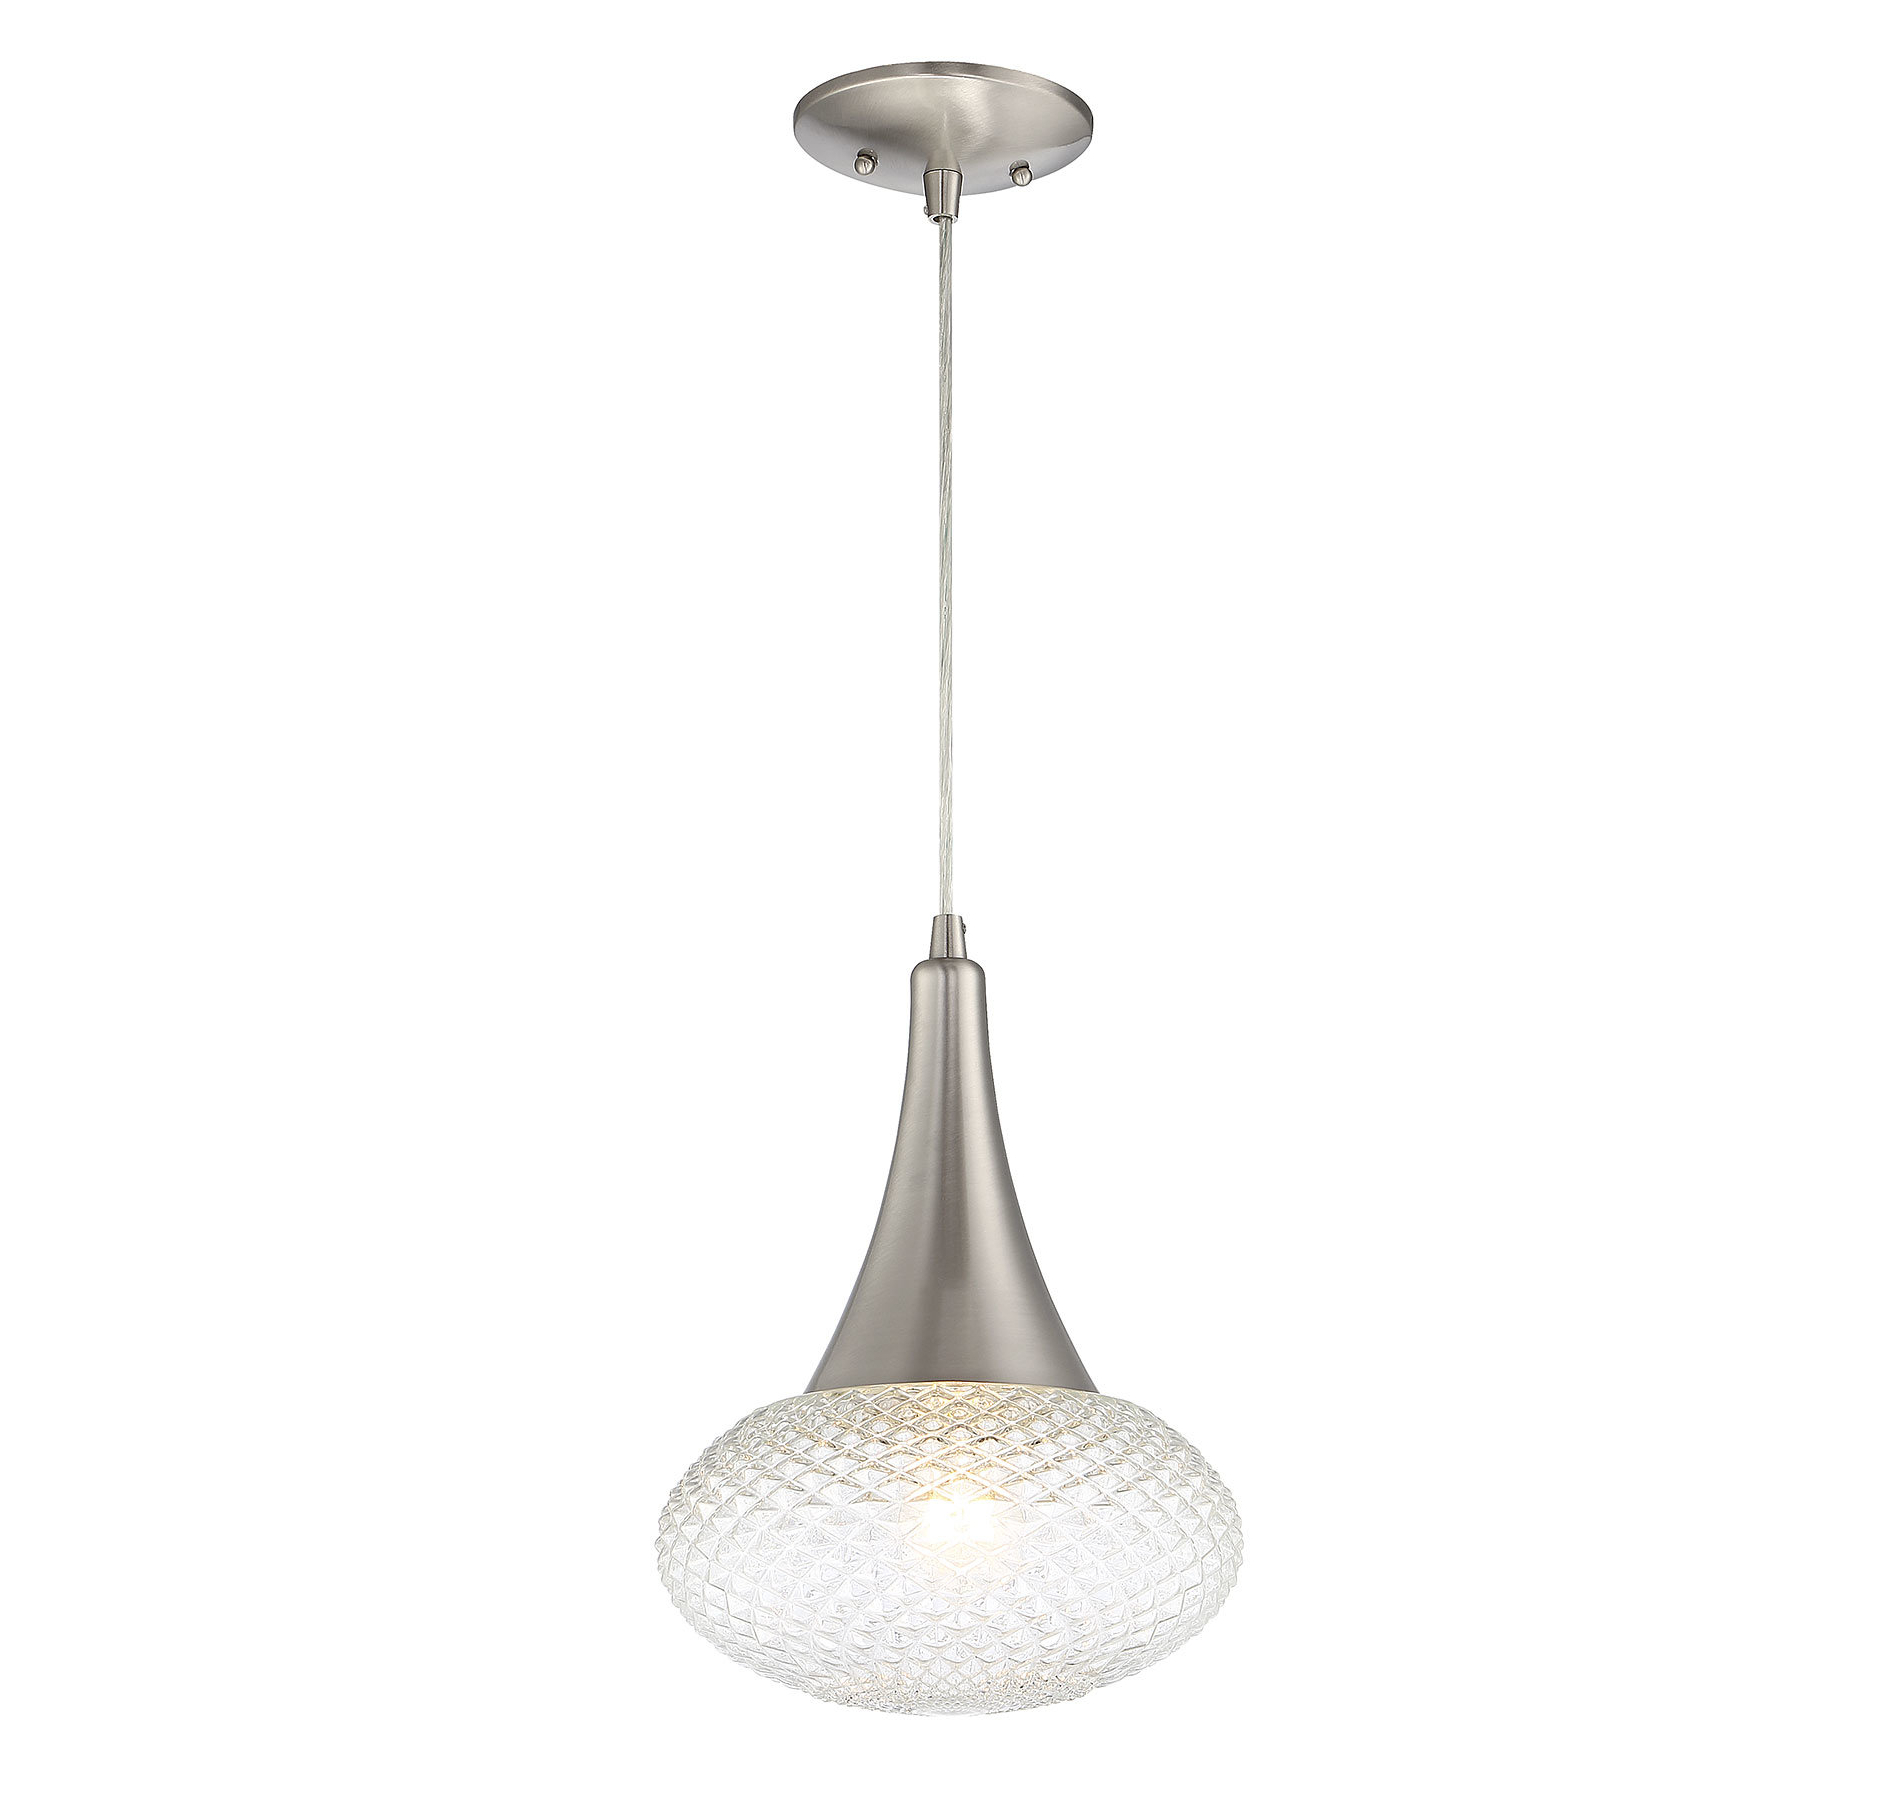 Abordale 1 Light Single Dome Pendants Pertaining To Fashionable Carly 1 Light Single Teardrop Pendant (View 5 of 25)